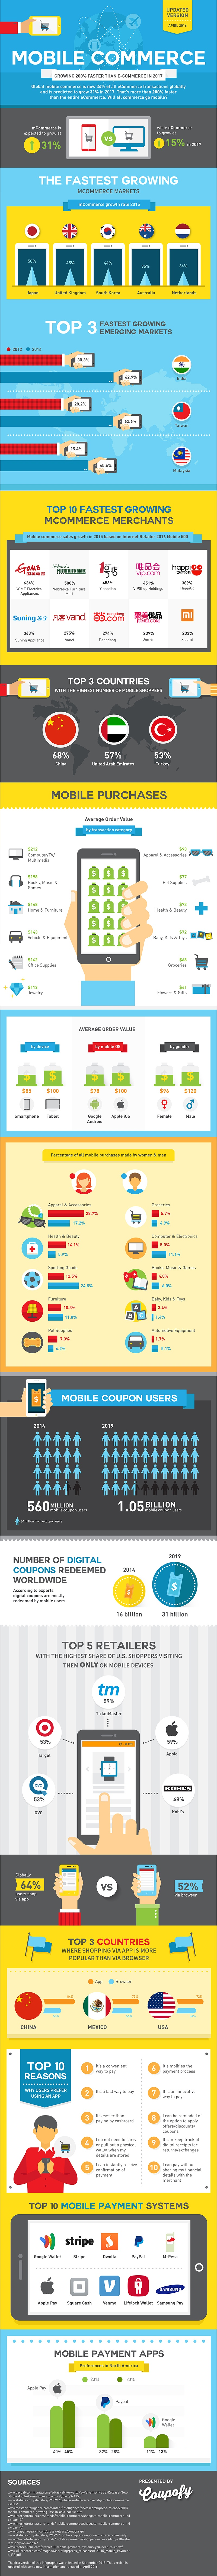 mobile-commerce-infographic.jpg